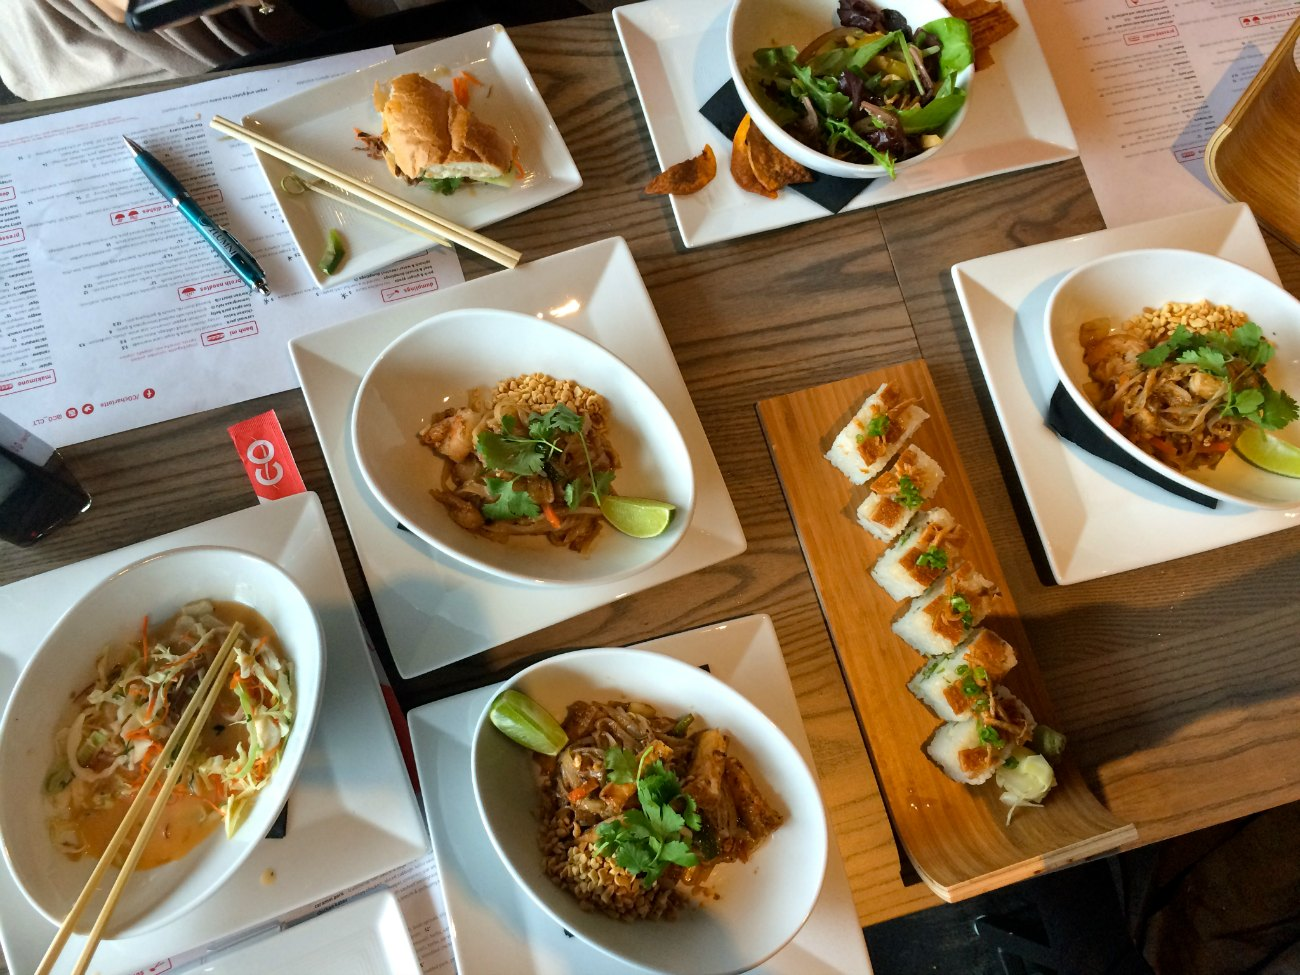 CO is now open at Park Road Shopping Center. Preview the menu (14 photos)